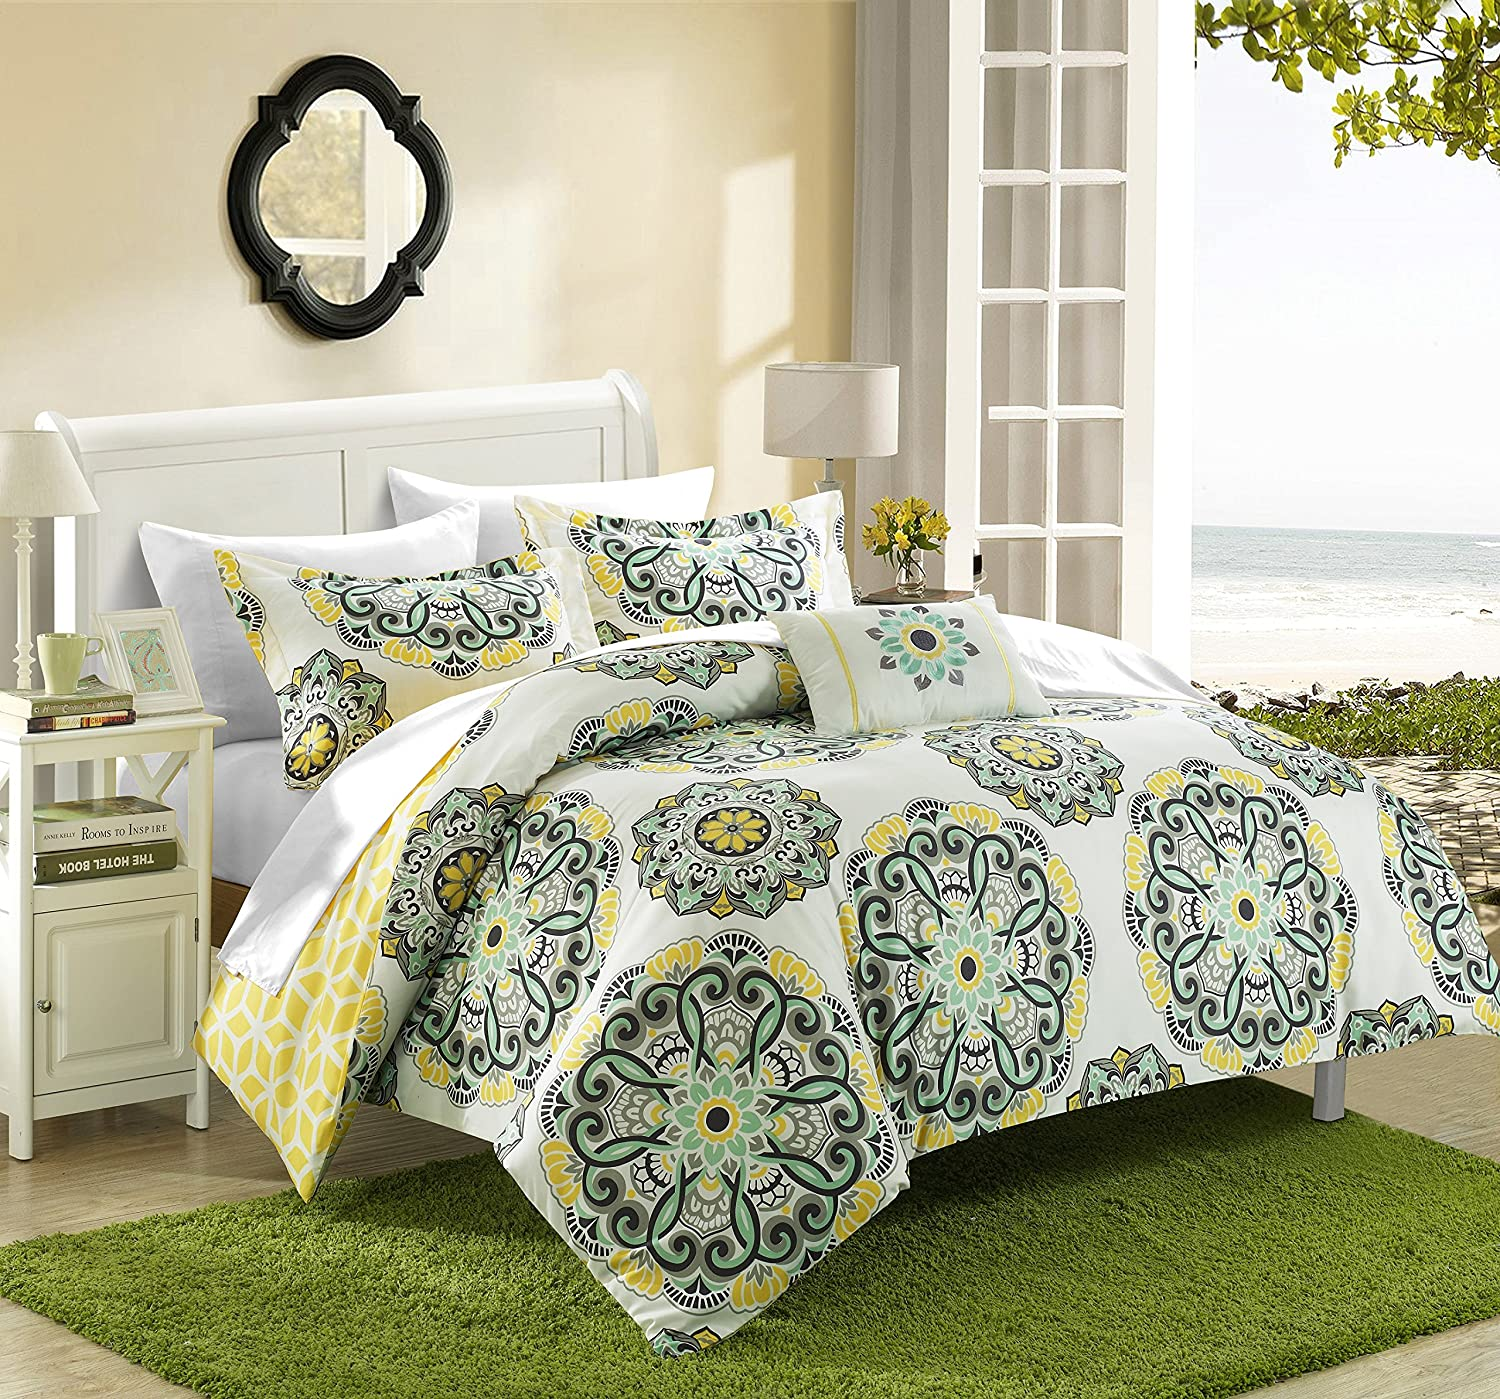 Chic Home Barcelona 8 Piece Reversible Comforter Set Super Soft Microfiber Large Printed Medallion Design